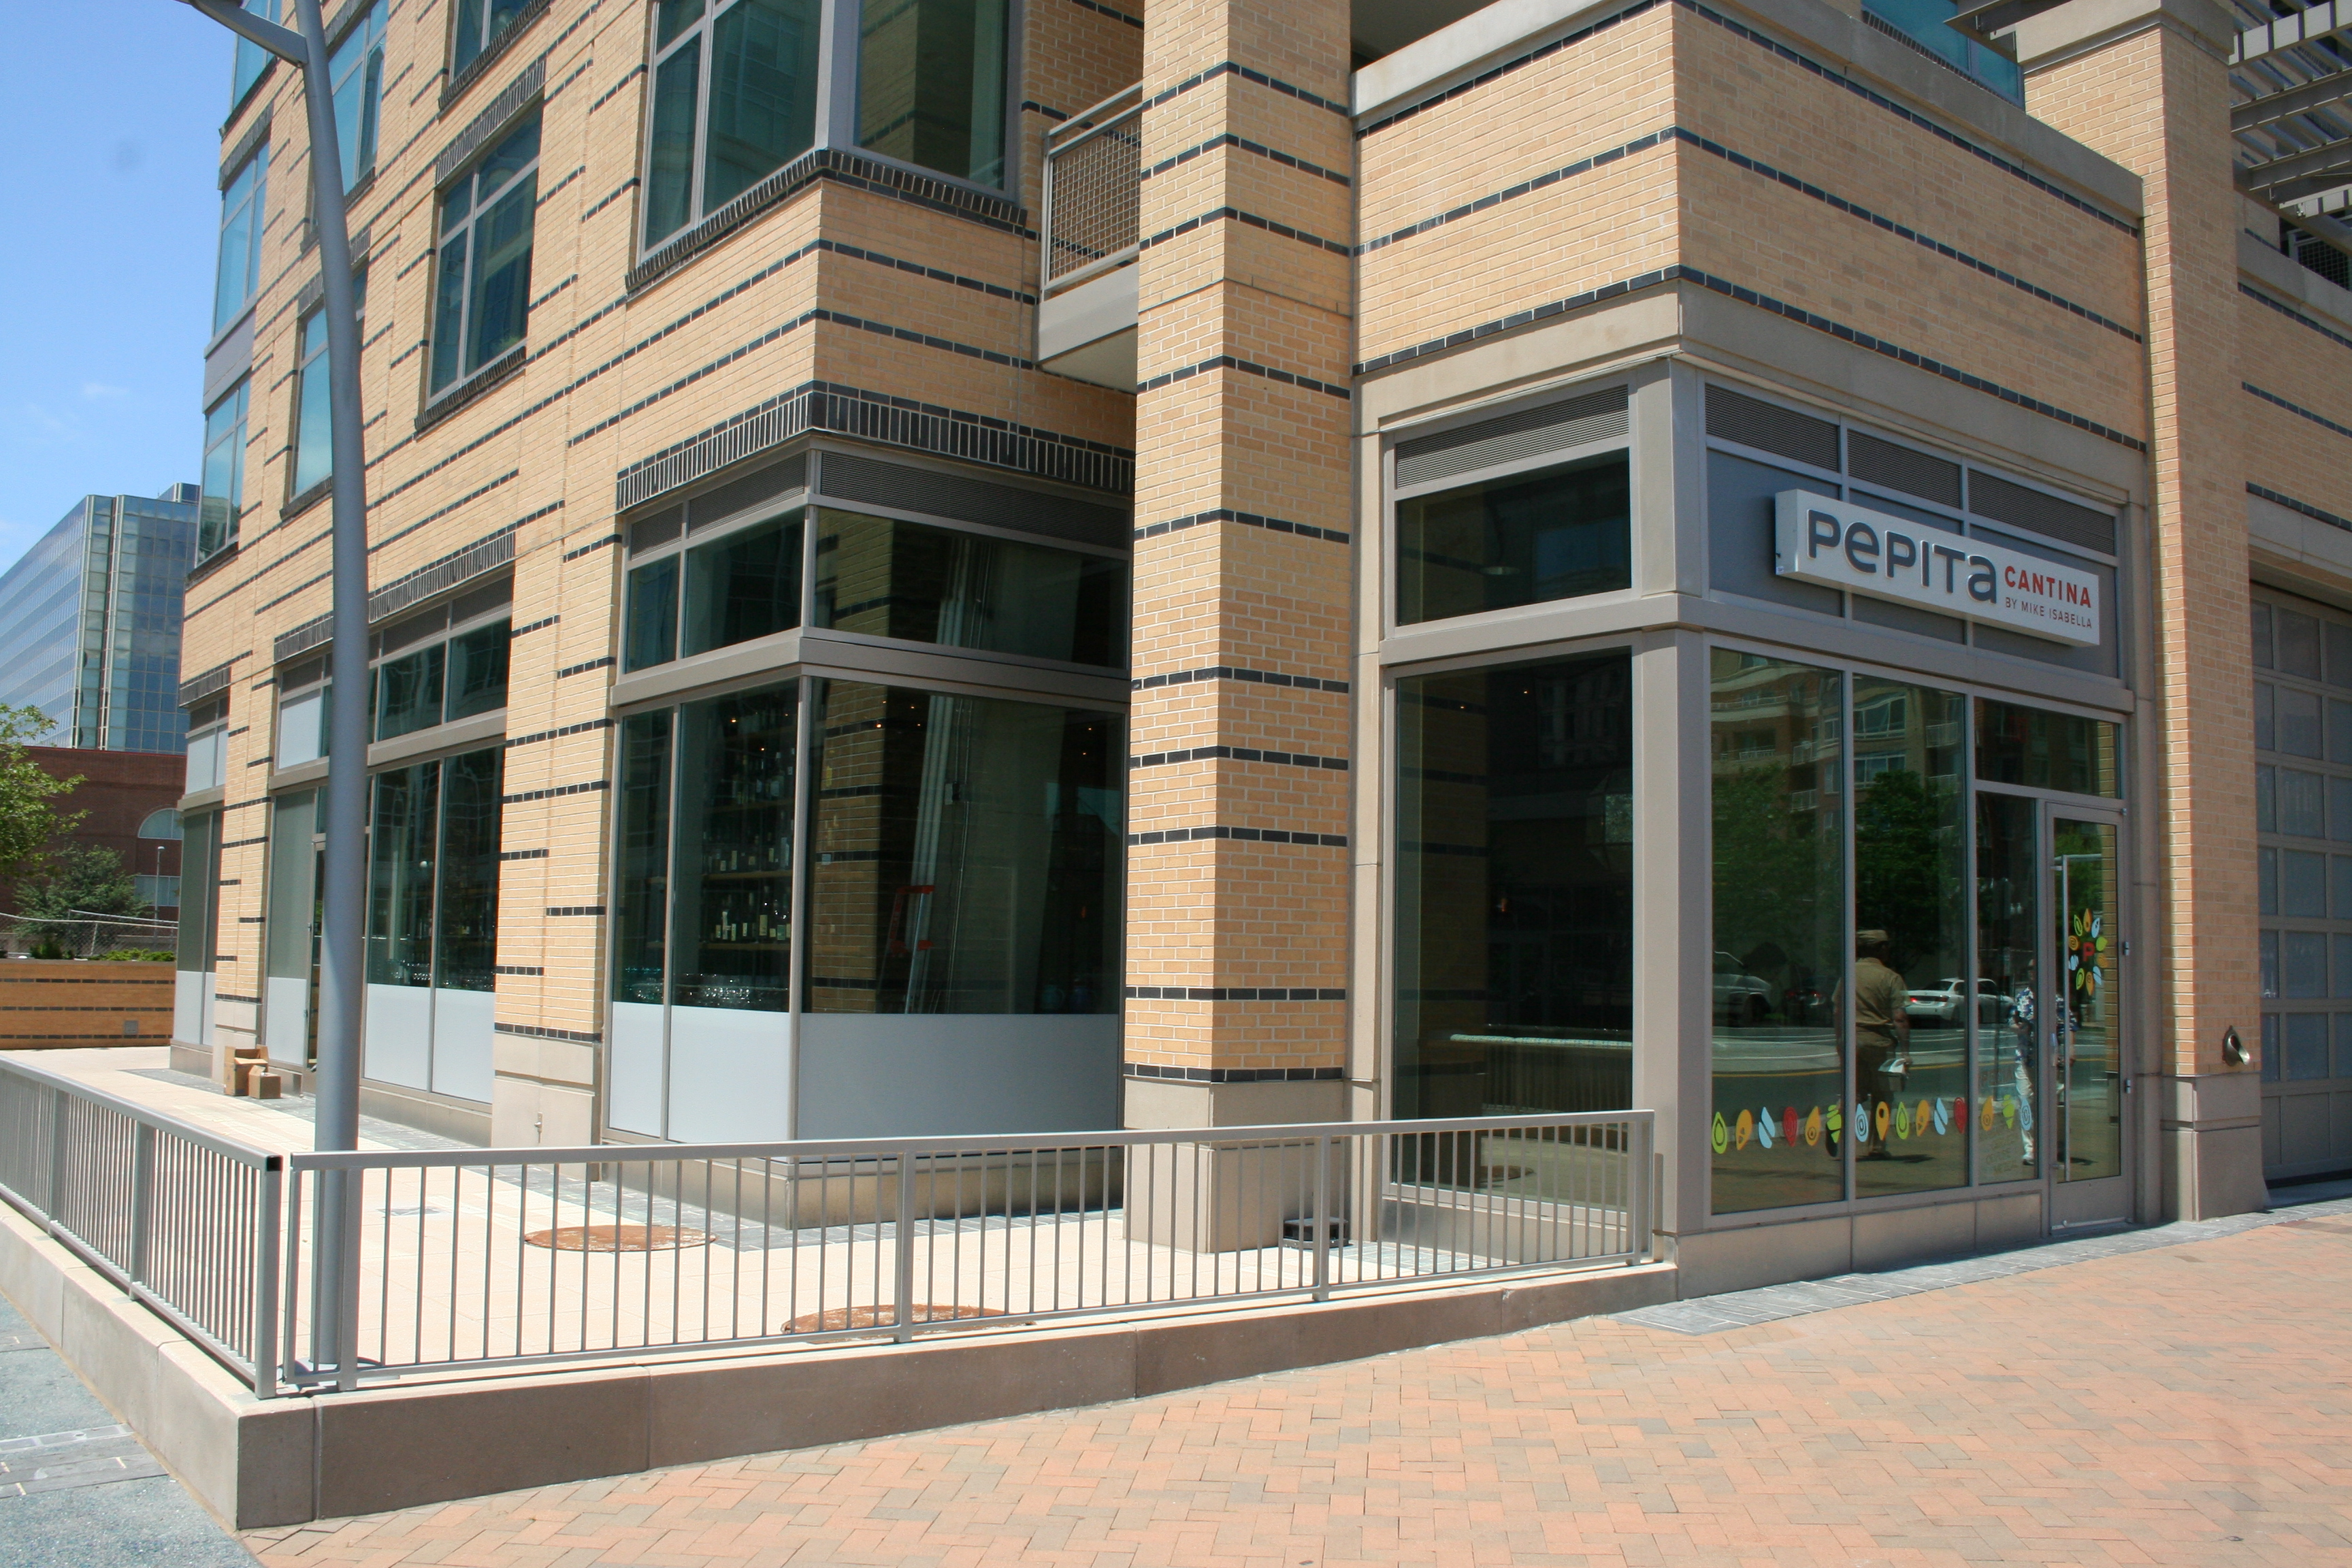 Mike Isabella's Mexican cantina, Pepita, opens in Ballston on July 30. (Photo: Mark Heckathorn/DC on Heels)